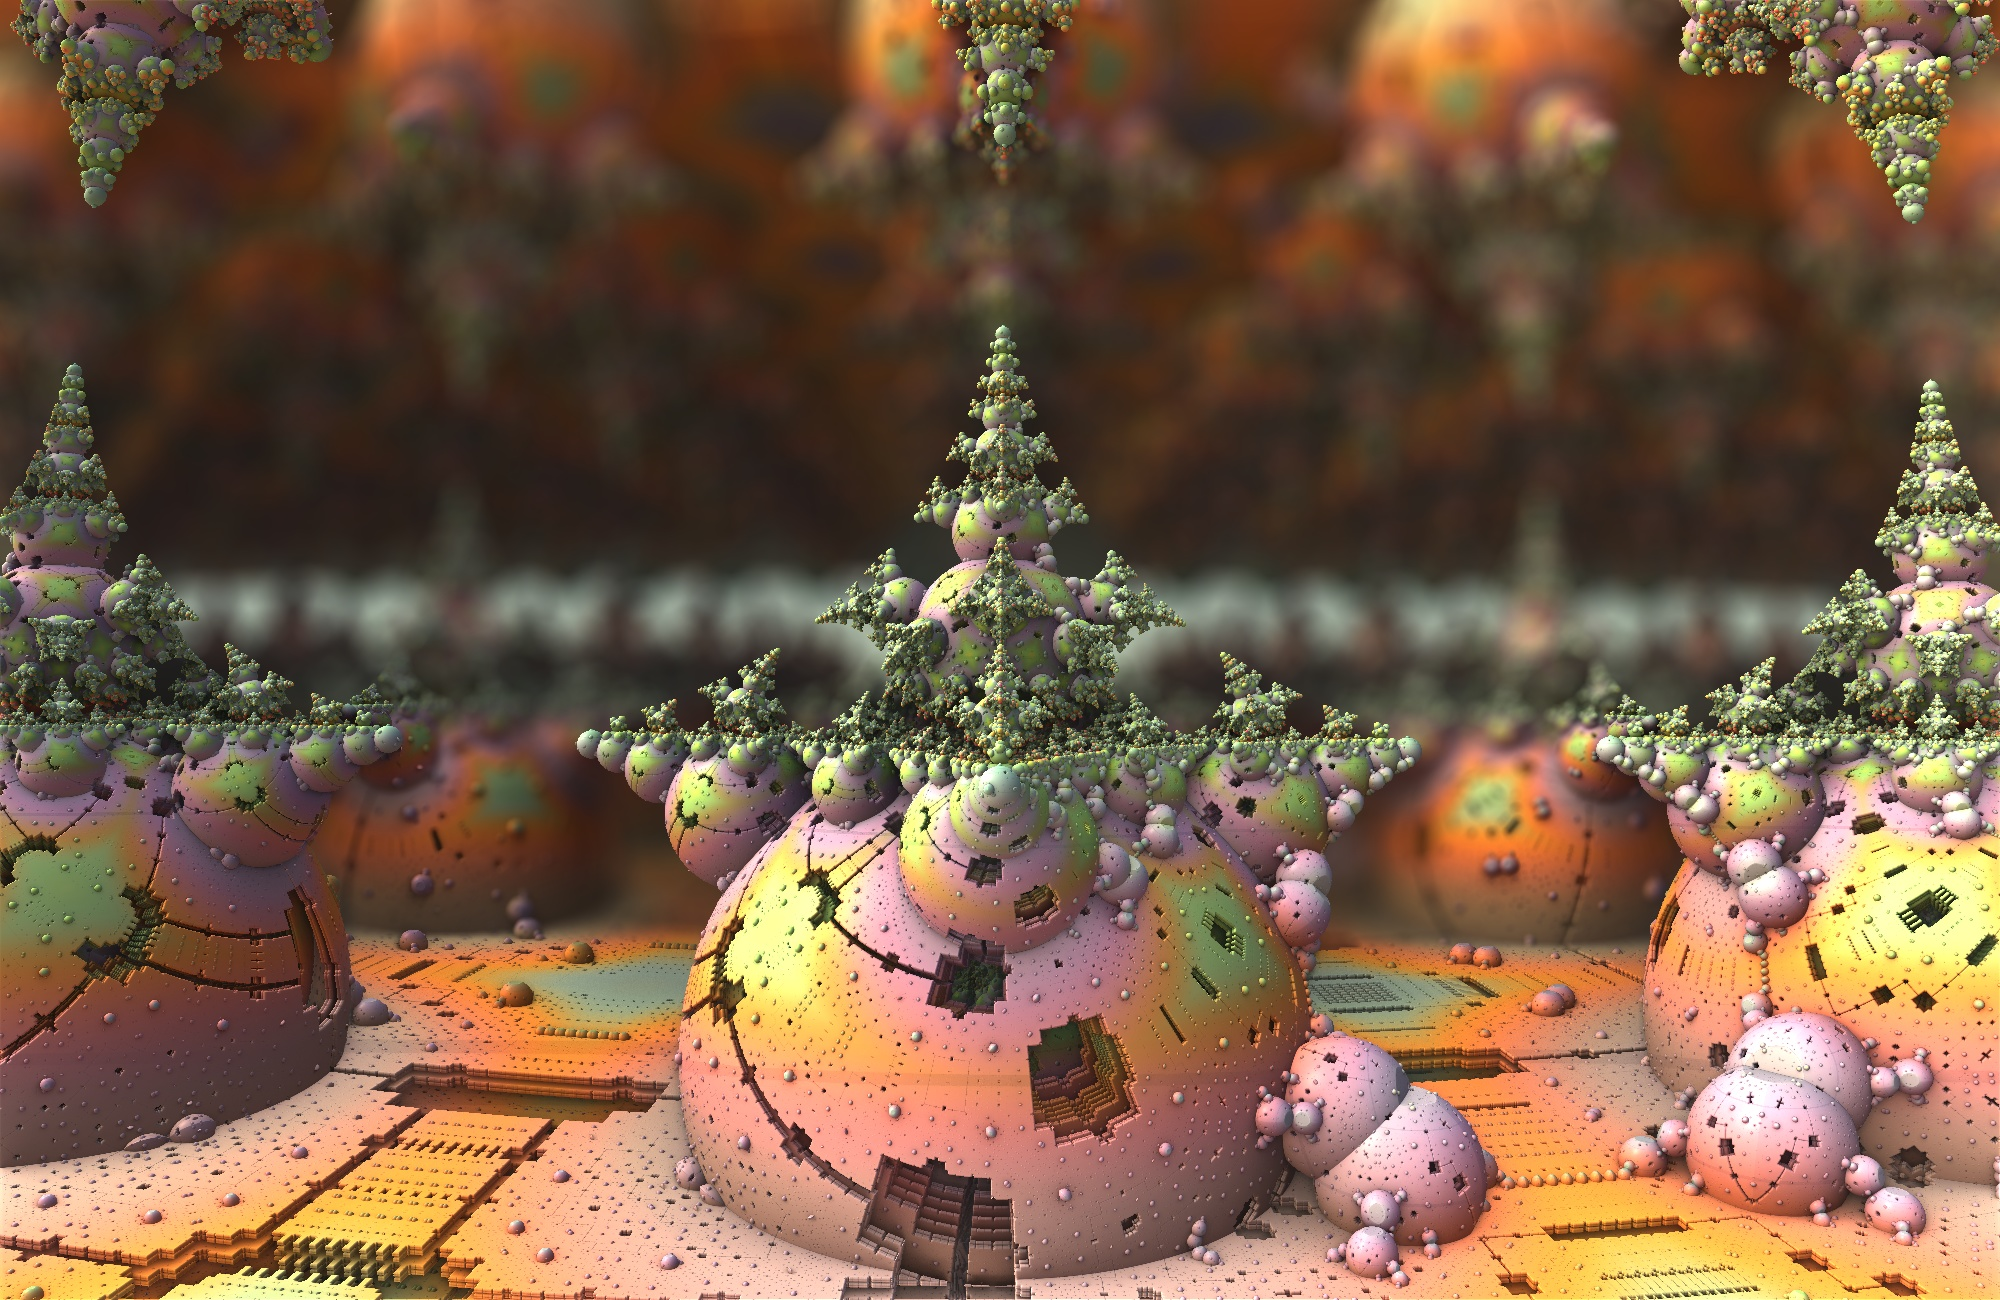 Variations on a Theme in Fractal